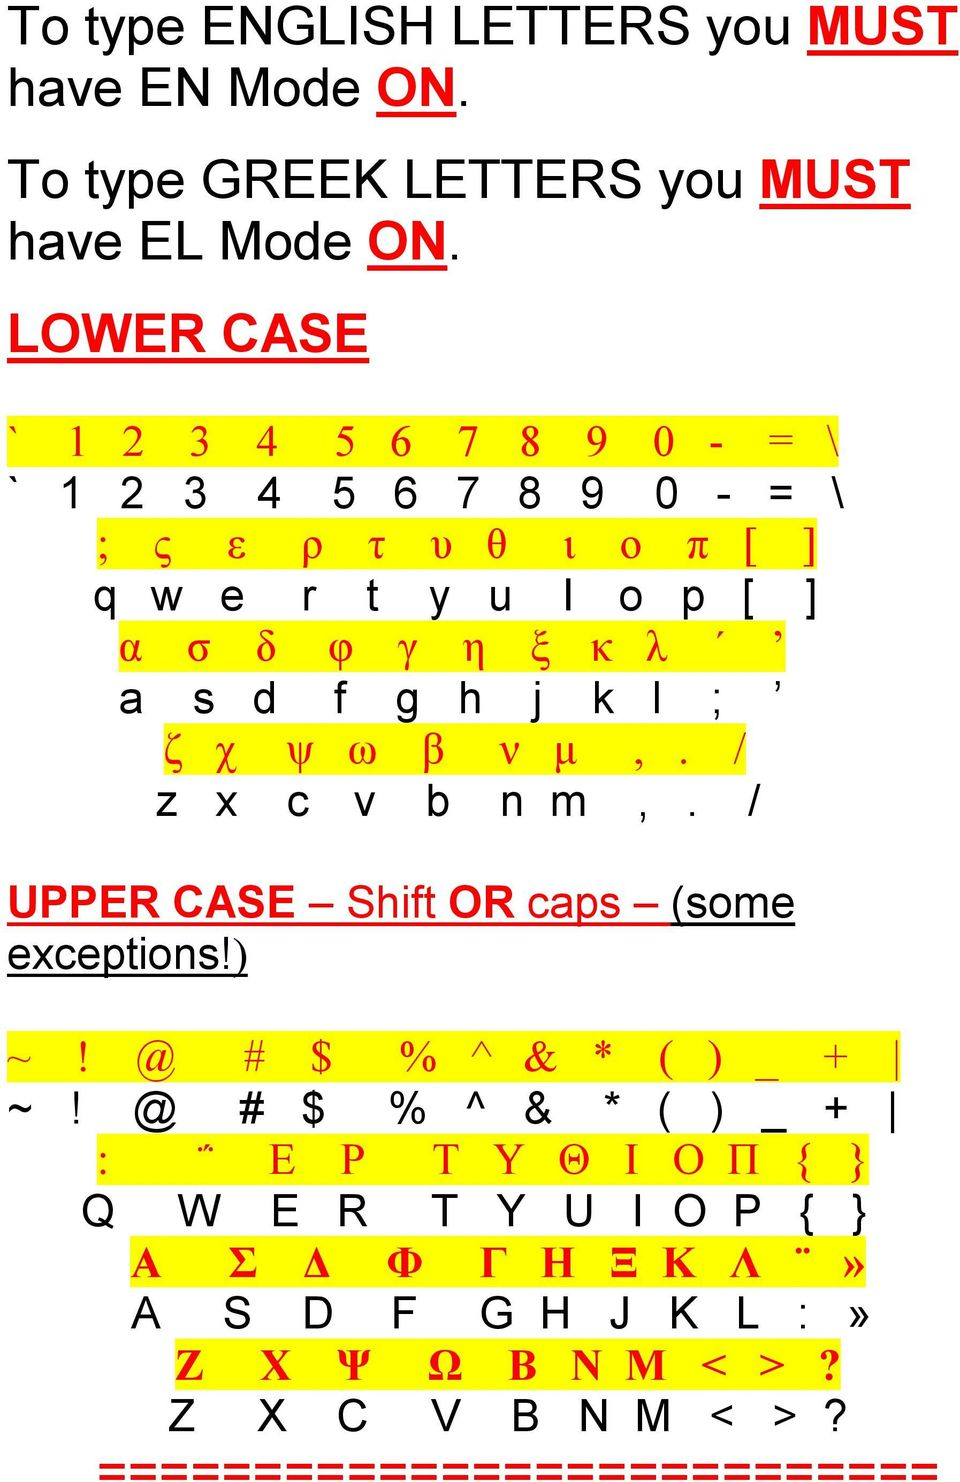 a s d f g h j k l ; ζ χ ψ ω β ν μ,. / z x c v b n m,. / UPPER CASE Shift OR caps (some exceptions!) ~! @ # $ % ^ & * ( ) _ + ~!